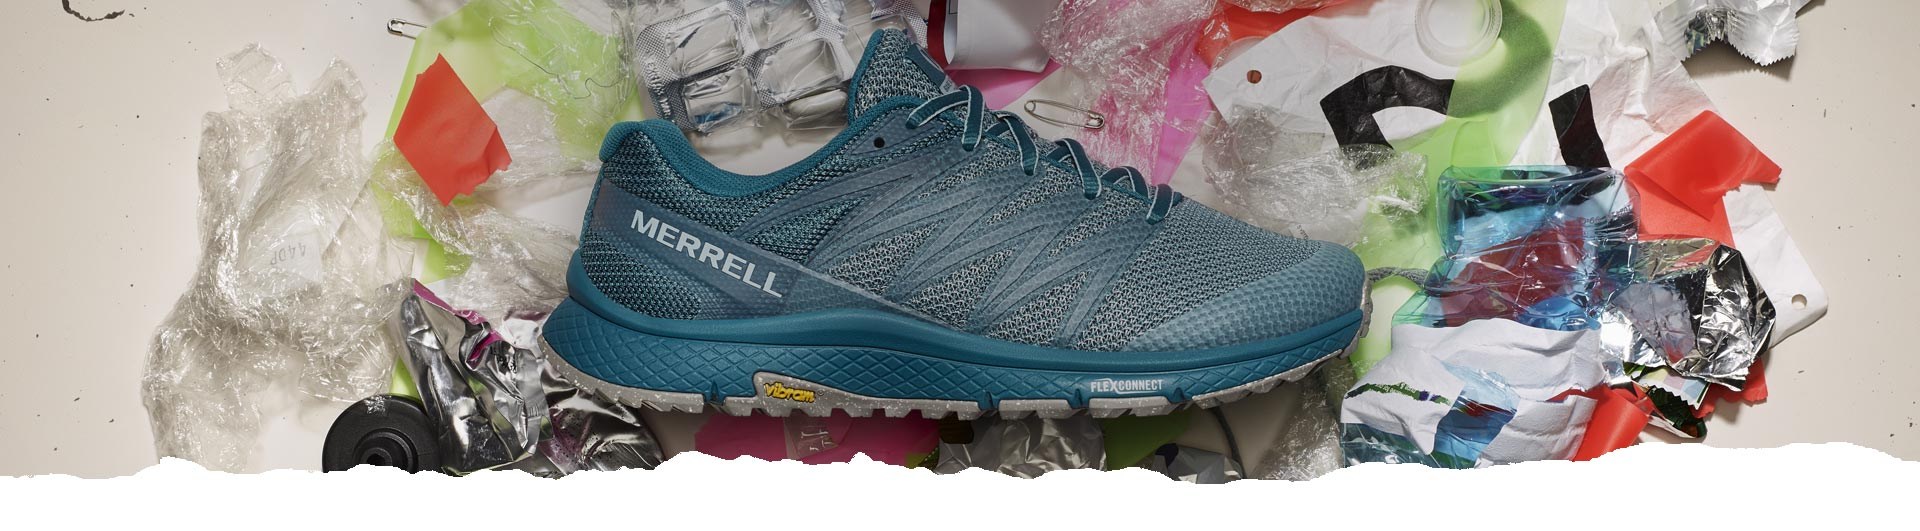 518df421 Official Merrell.com Site: The Outdoor Store for Hiking & Trail Running